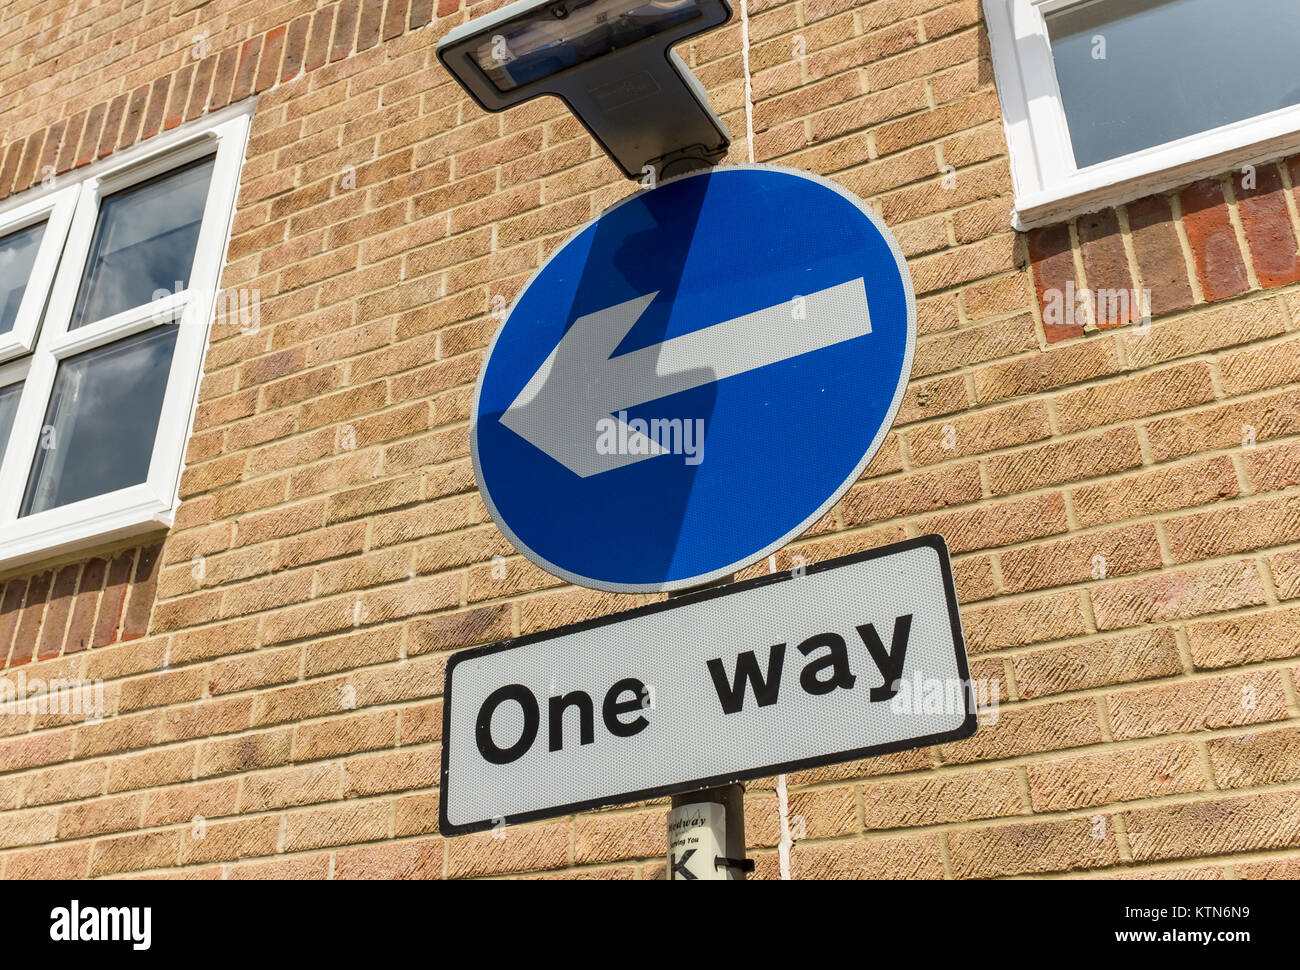 One Way Highway Code sign (blue circle with white arrow) for road users, UK - Stock Image